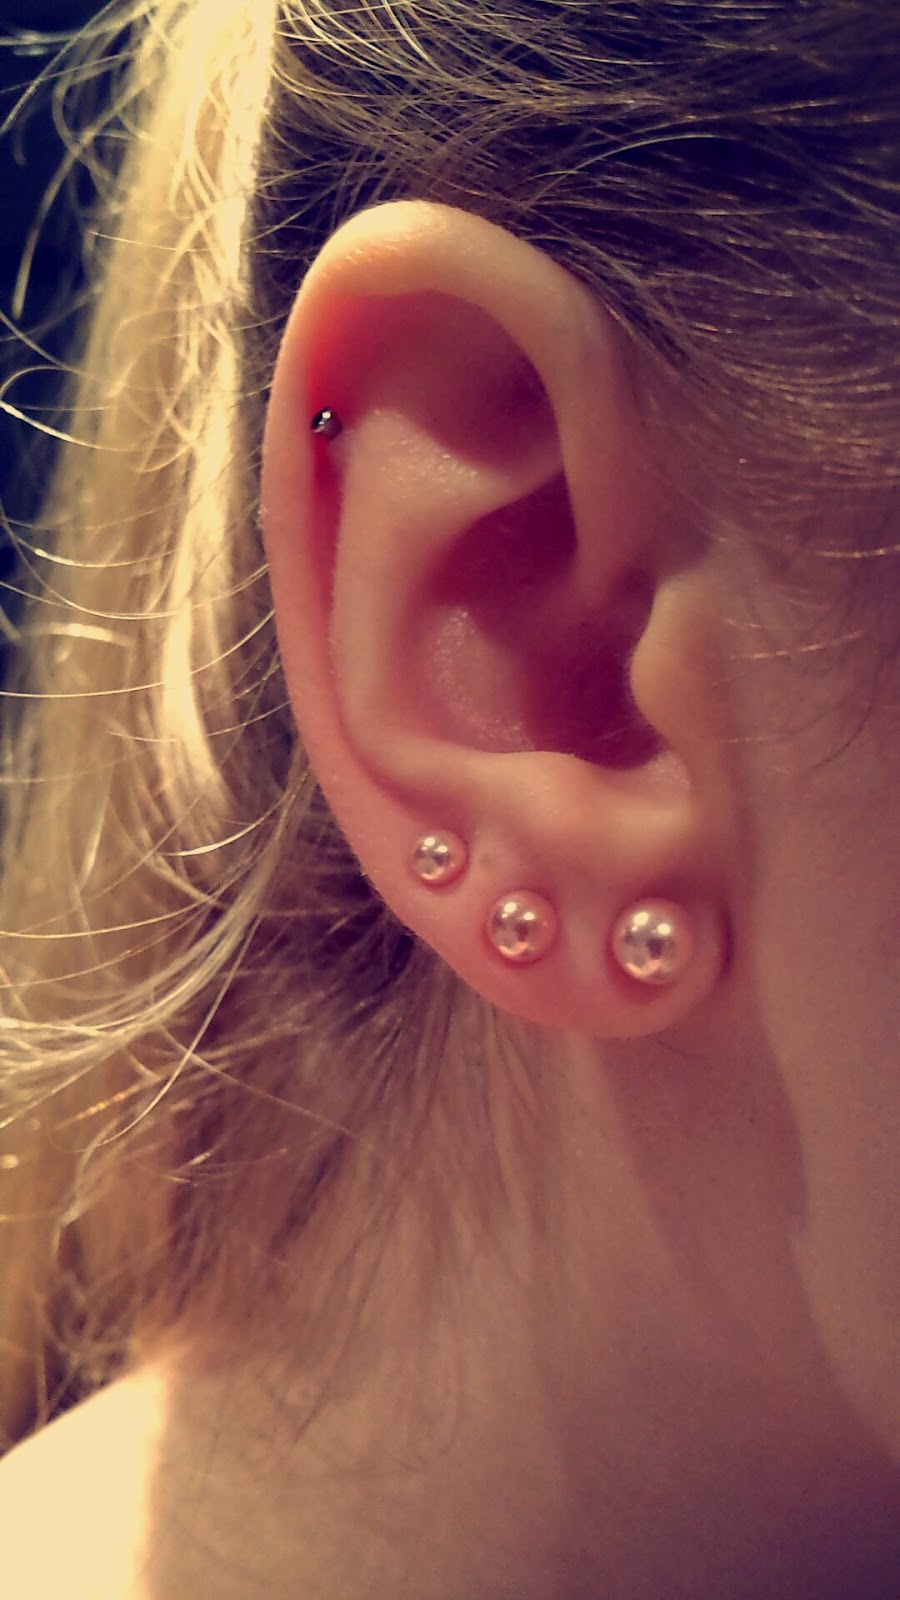 Meine Piercings :-) - the happy sides of life